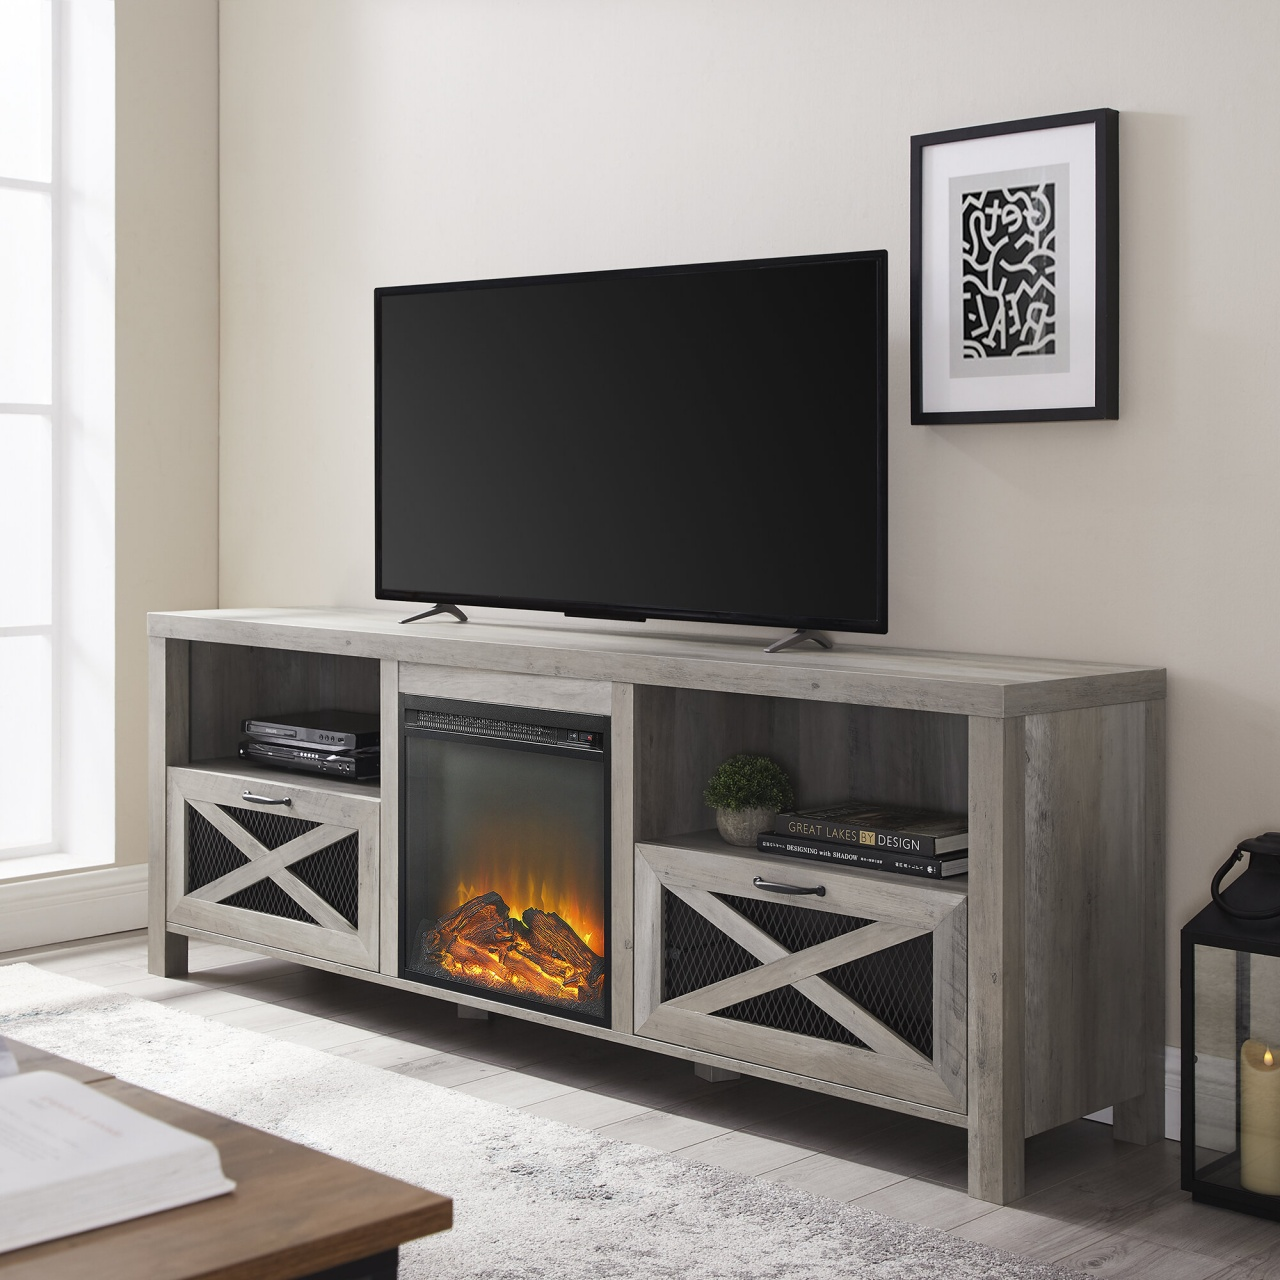 70 inch tv stand with fireplace tansey tv stand for tvs up to 78 inches from 70 inch tv stand with fireplace